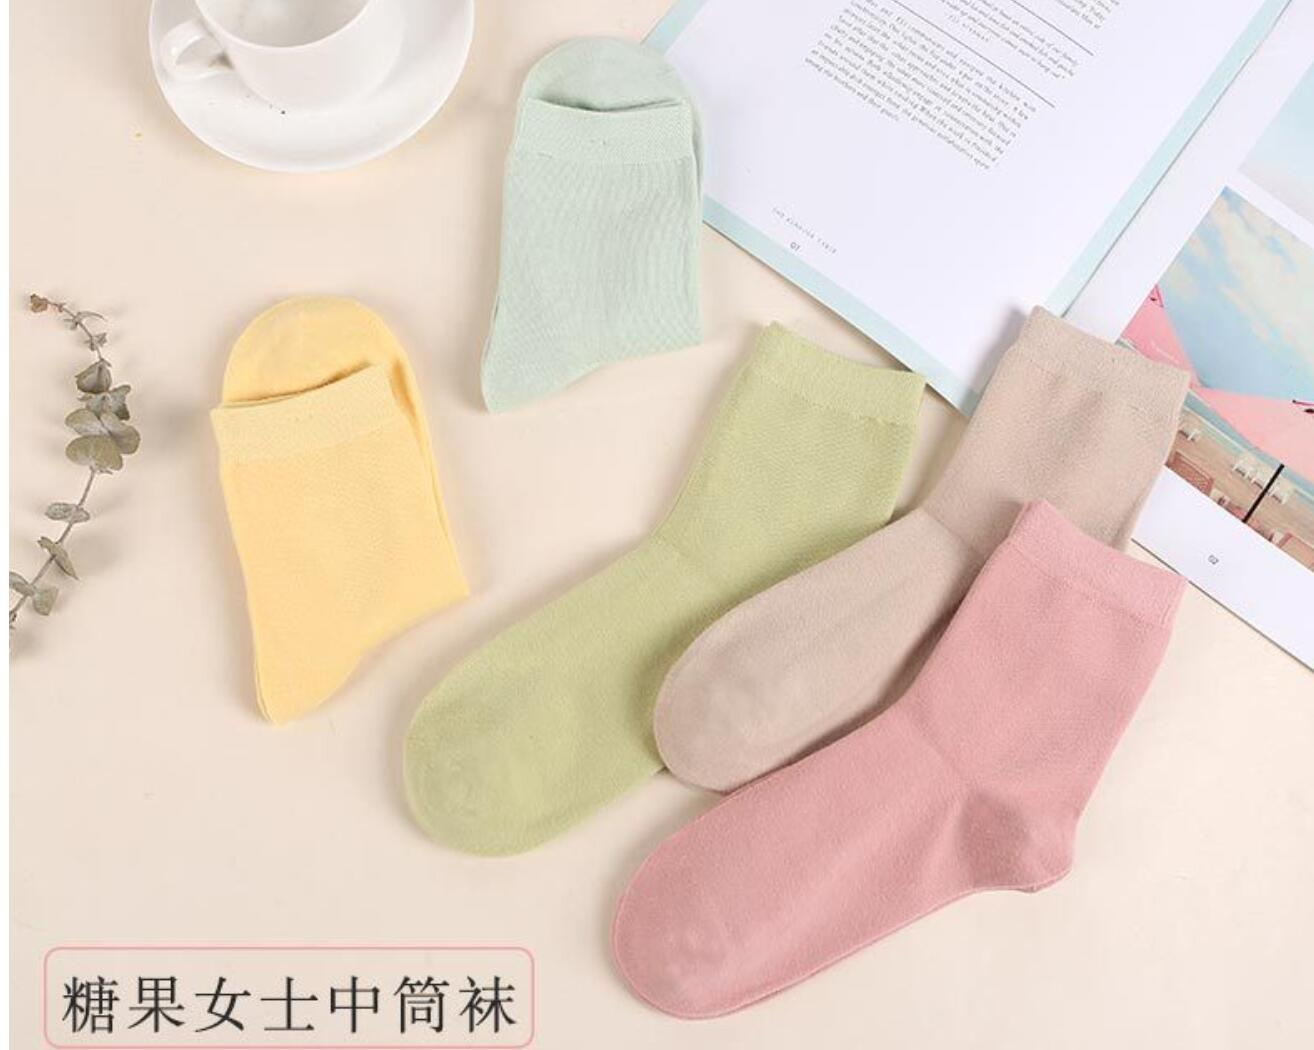 NEW 2018 WOMEN Socks Soft Cotton Socks WOMEN Warmers Meias AY401 25